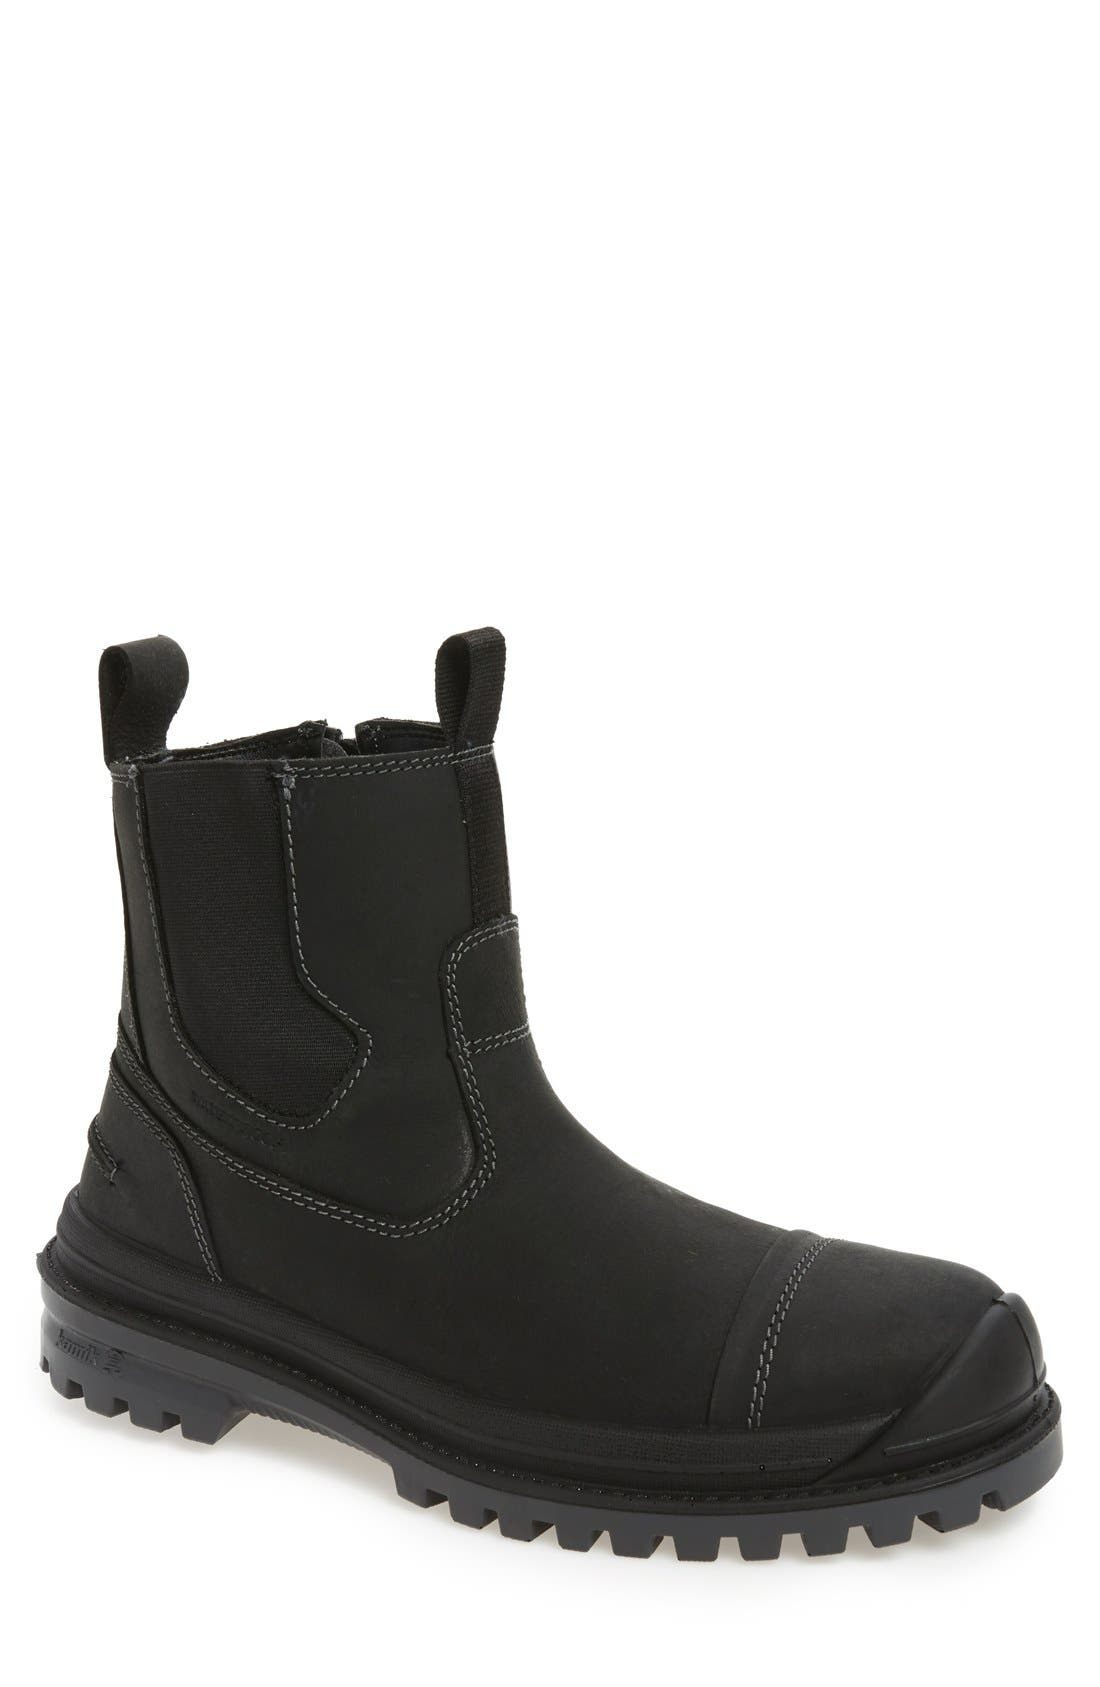 Griffon Snow Waterproof Boot,                         Main,                         color, BLACK LEATHER